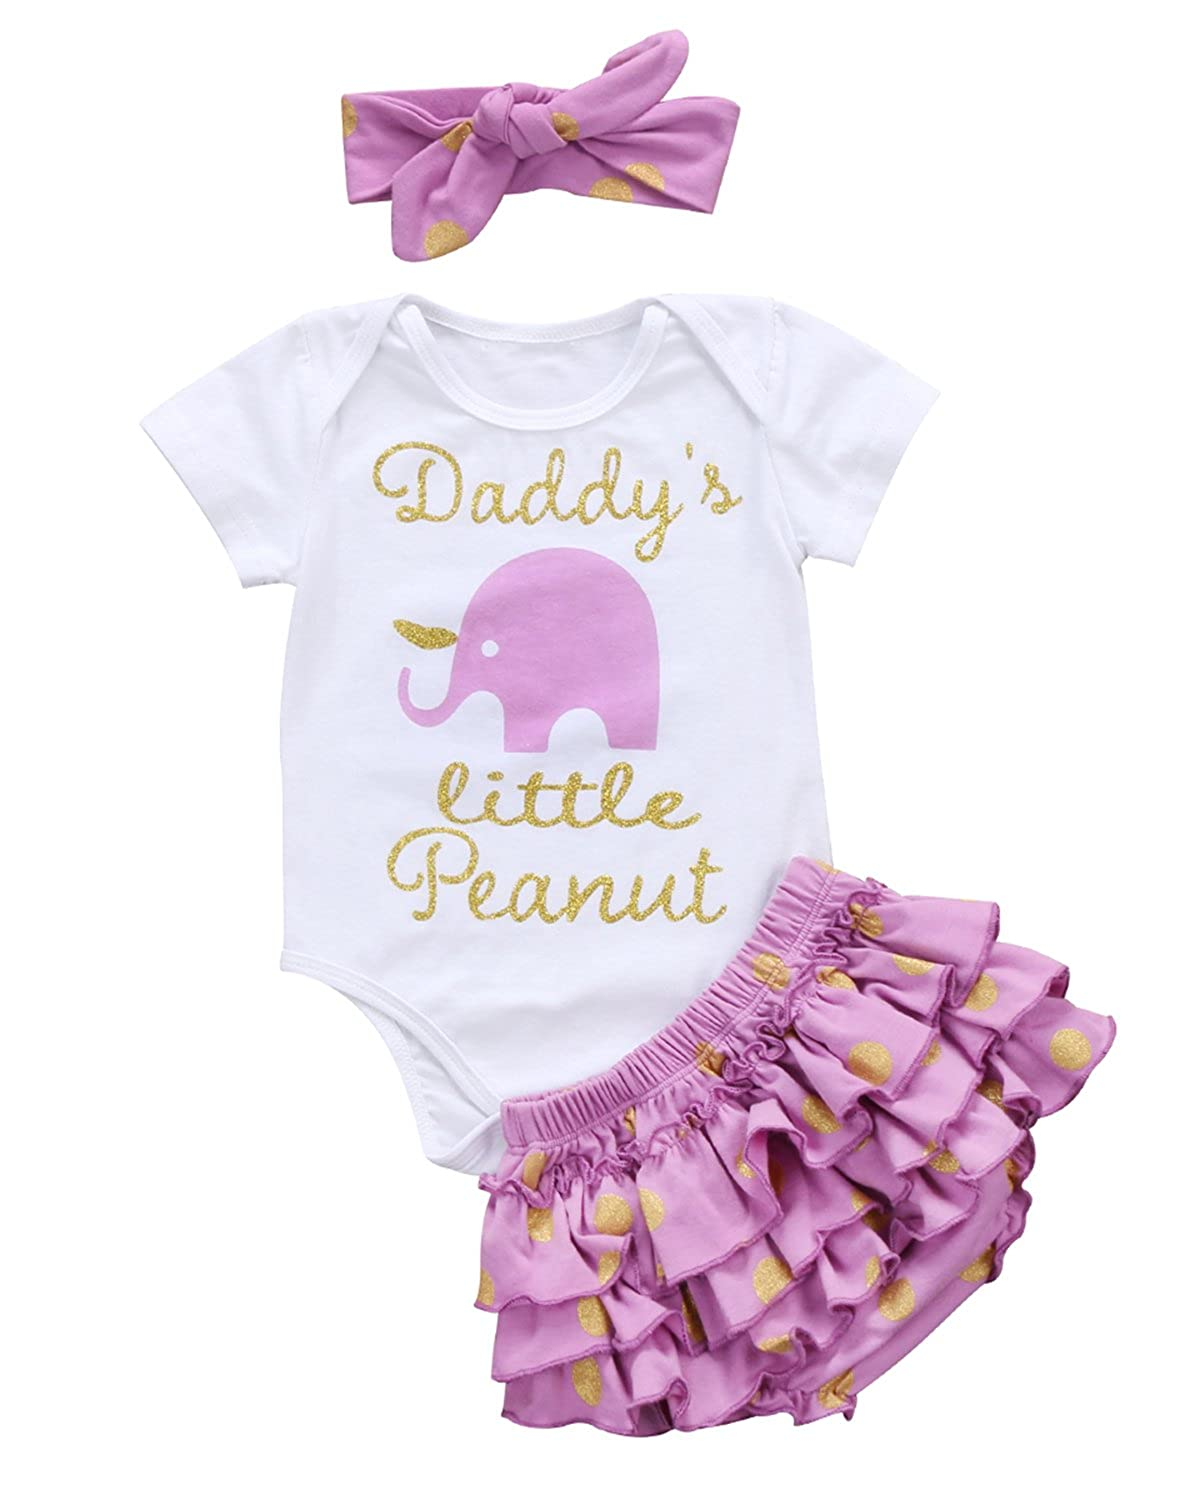 Mrs.BakerHome Cute Baby Girl Daddy/'s Girl Print Bow Romper+Multi-Tulle Ruffle Bowknot Shorts Outfit